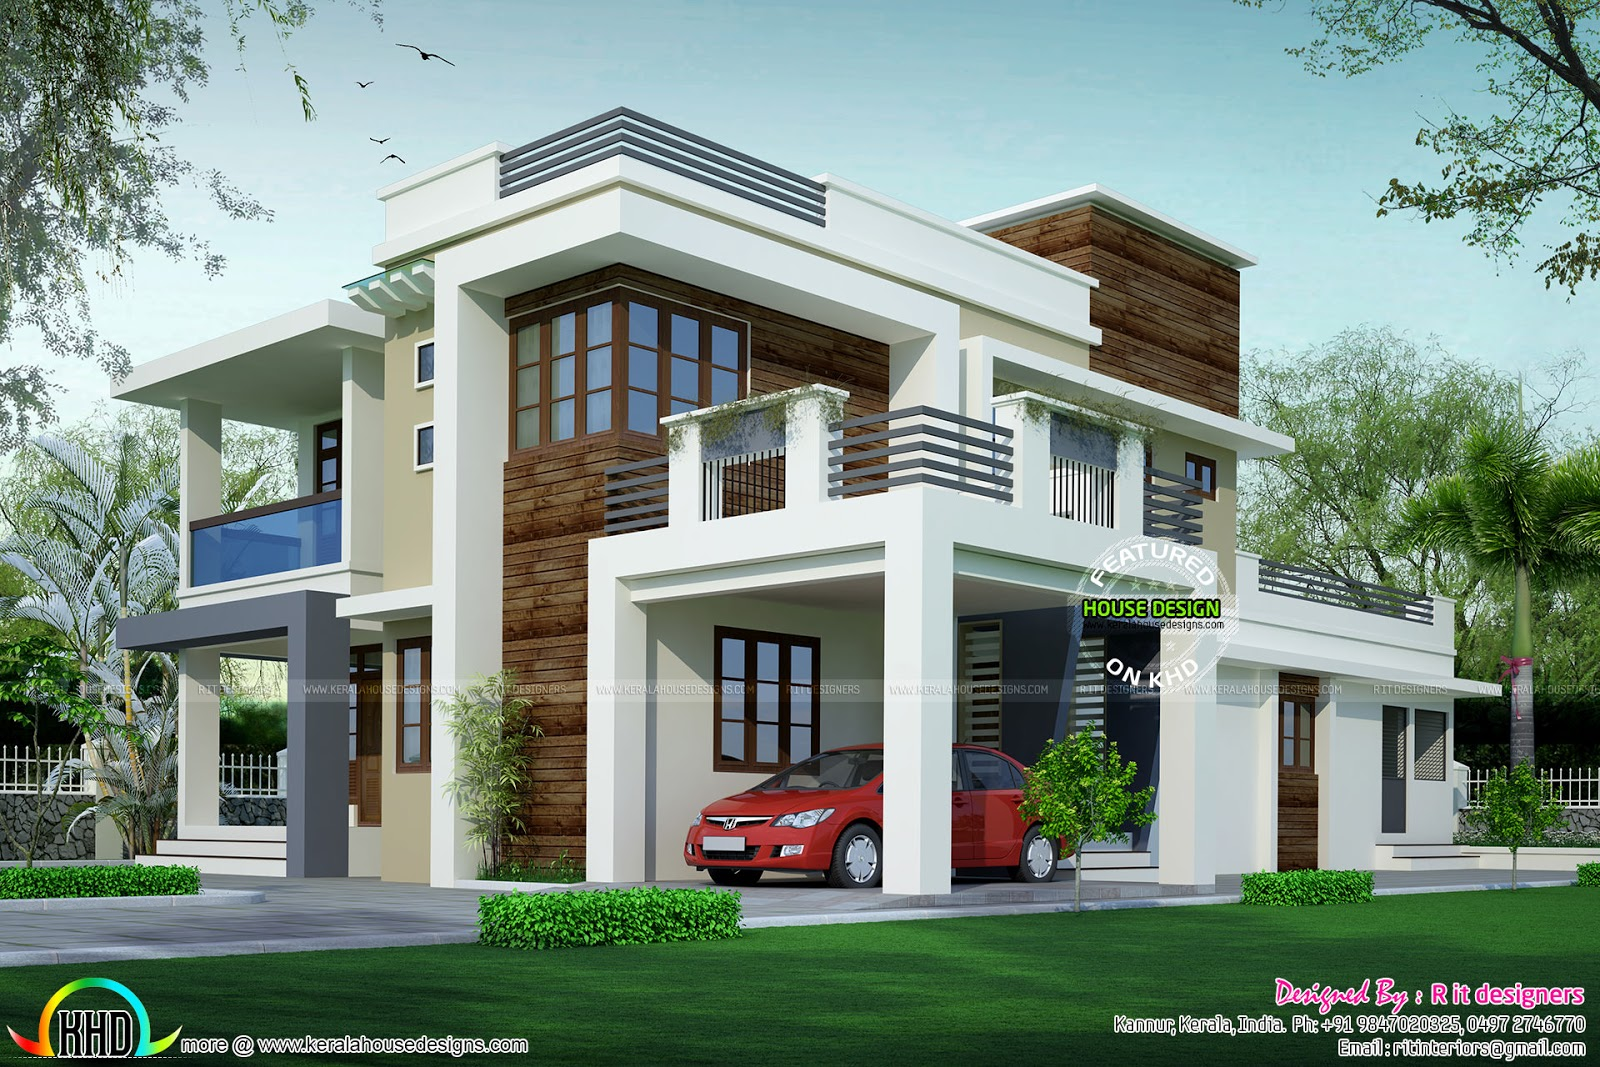 House design contemporary model kerala home design and for New home design in kerala